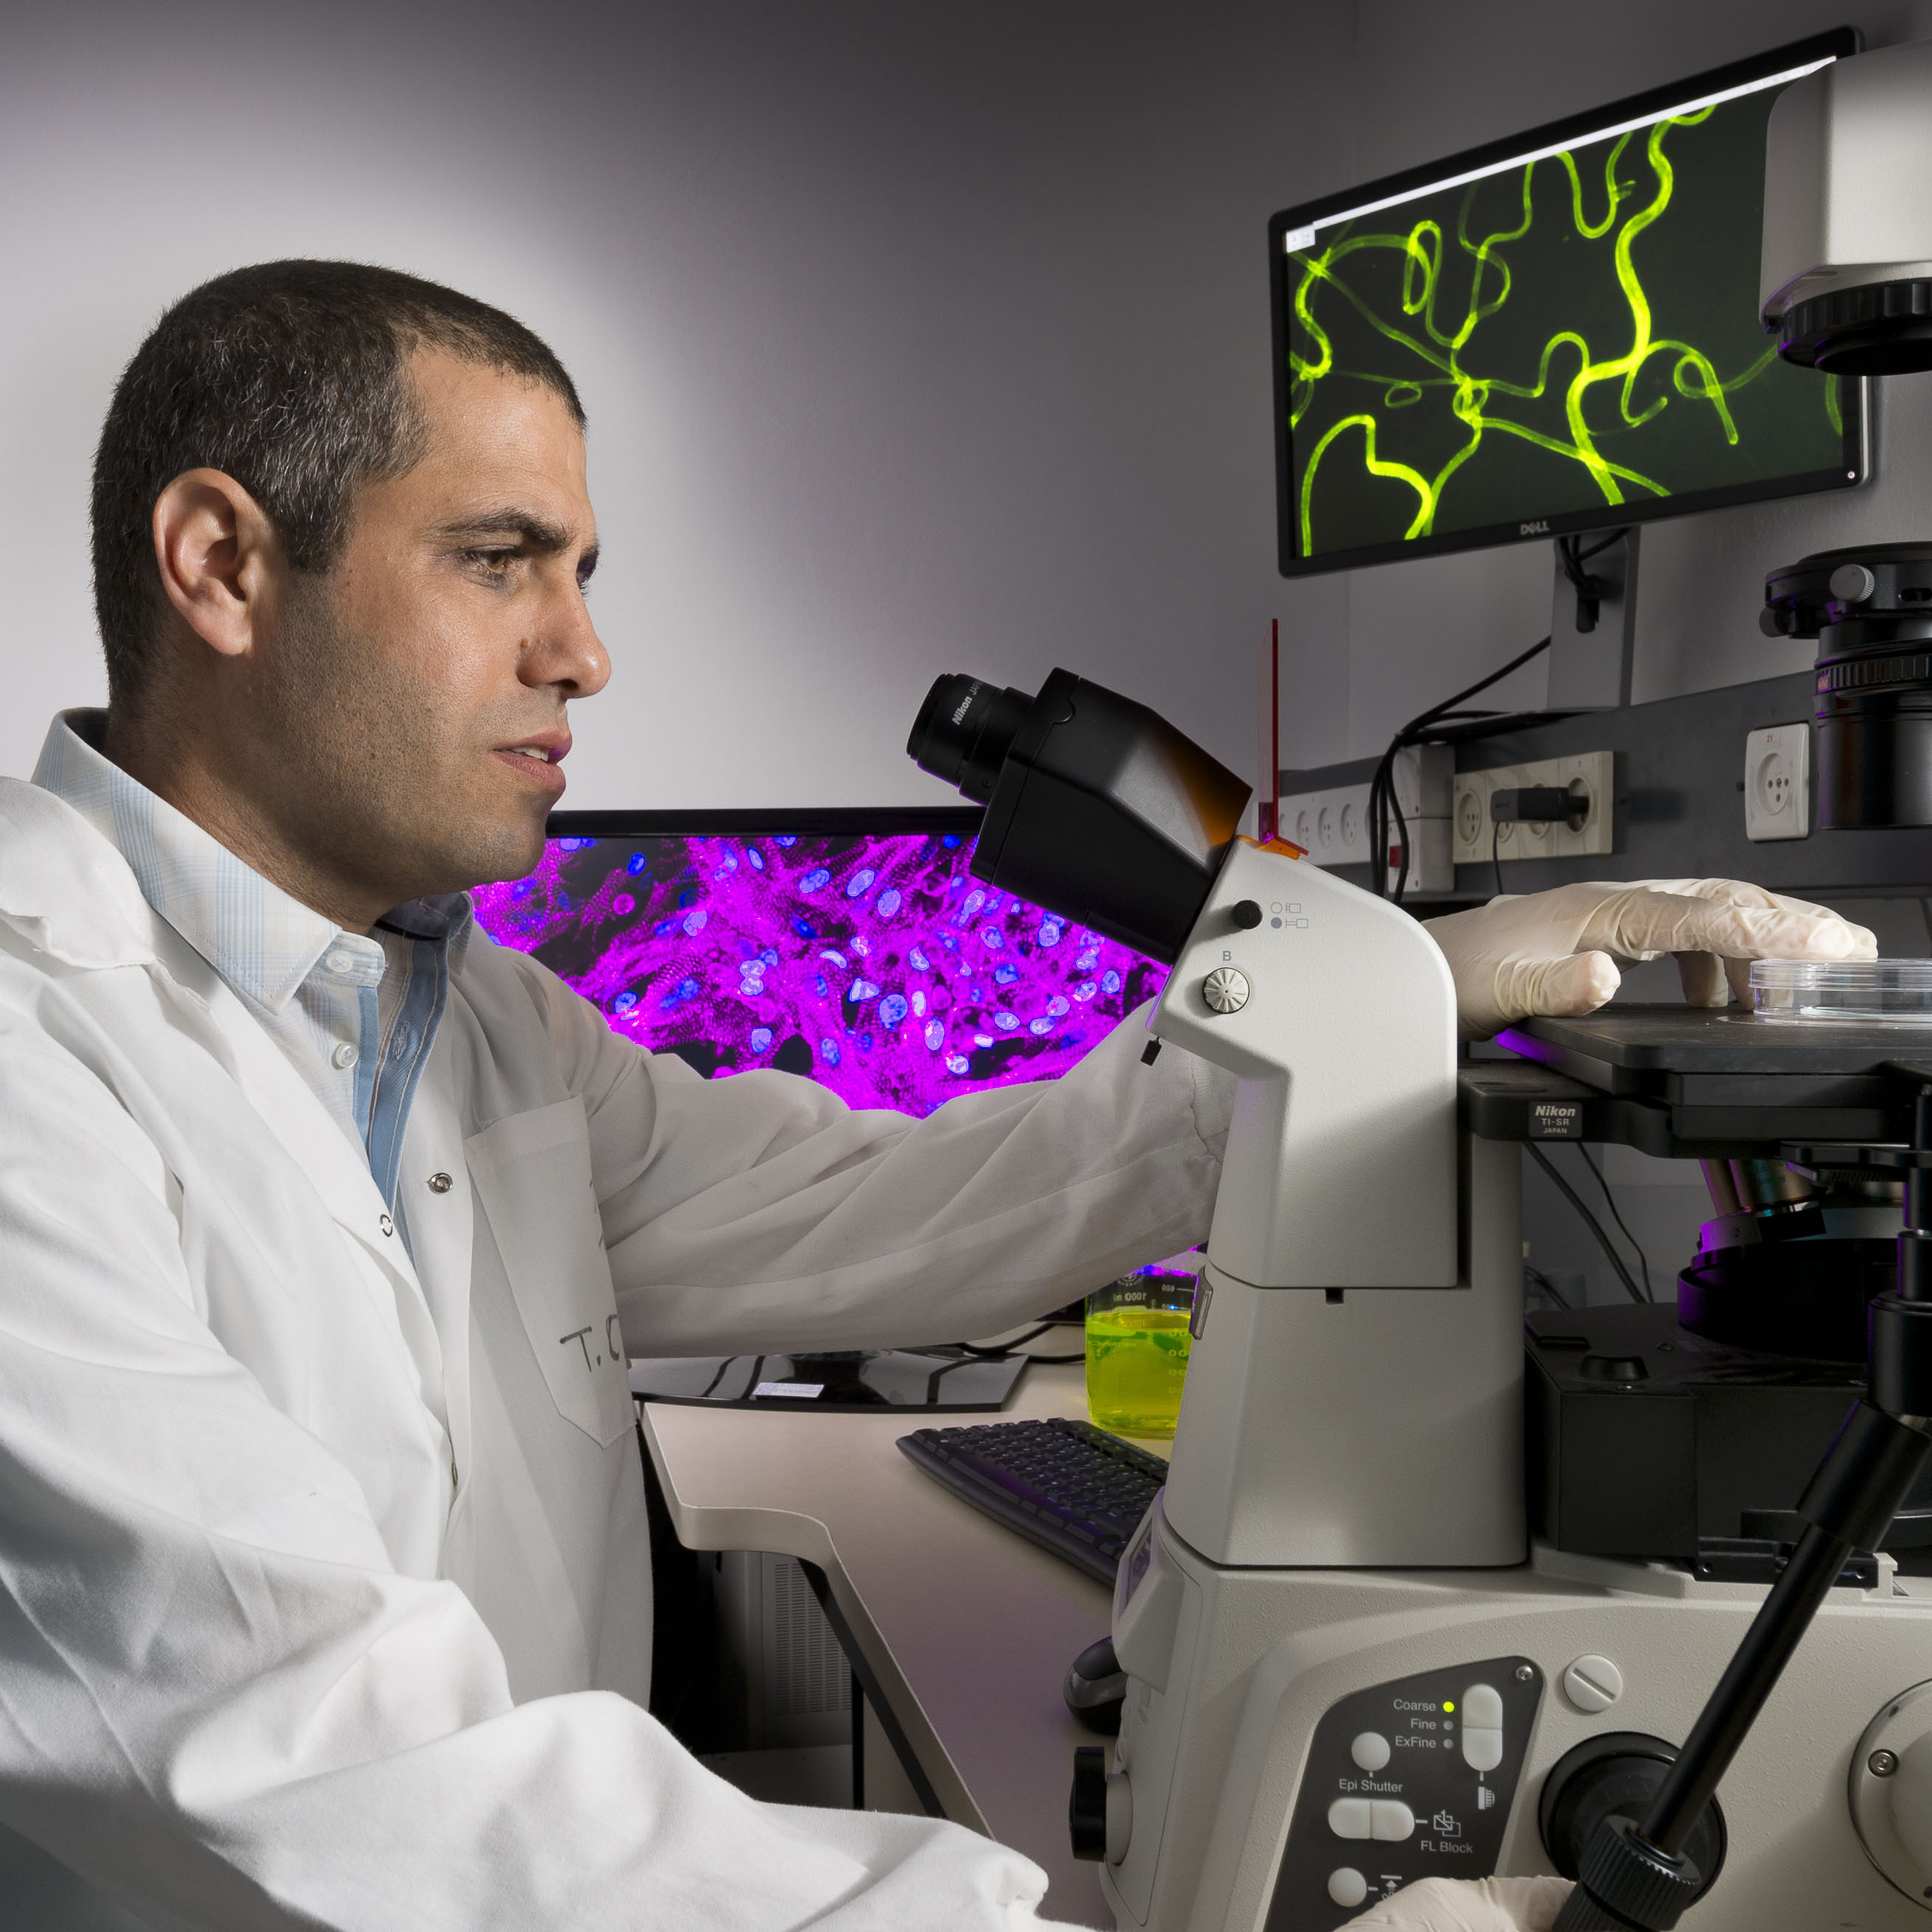 Patient's own cells used to engineer personalized tissue implants